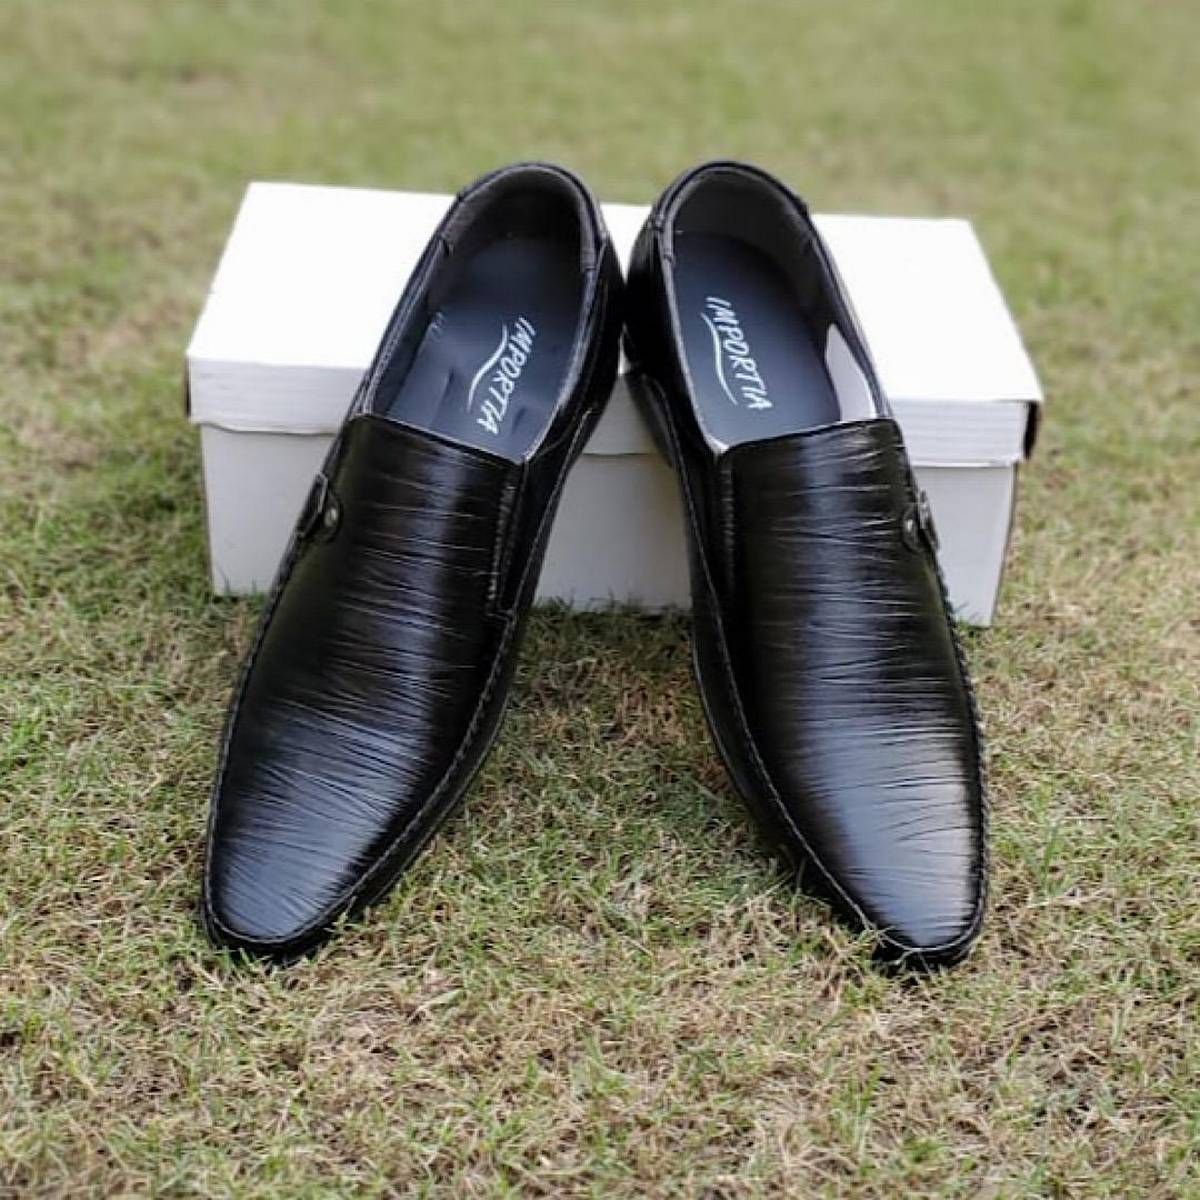 Black Synthetic leather shoes for men